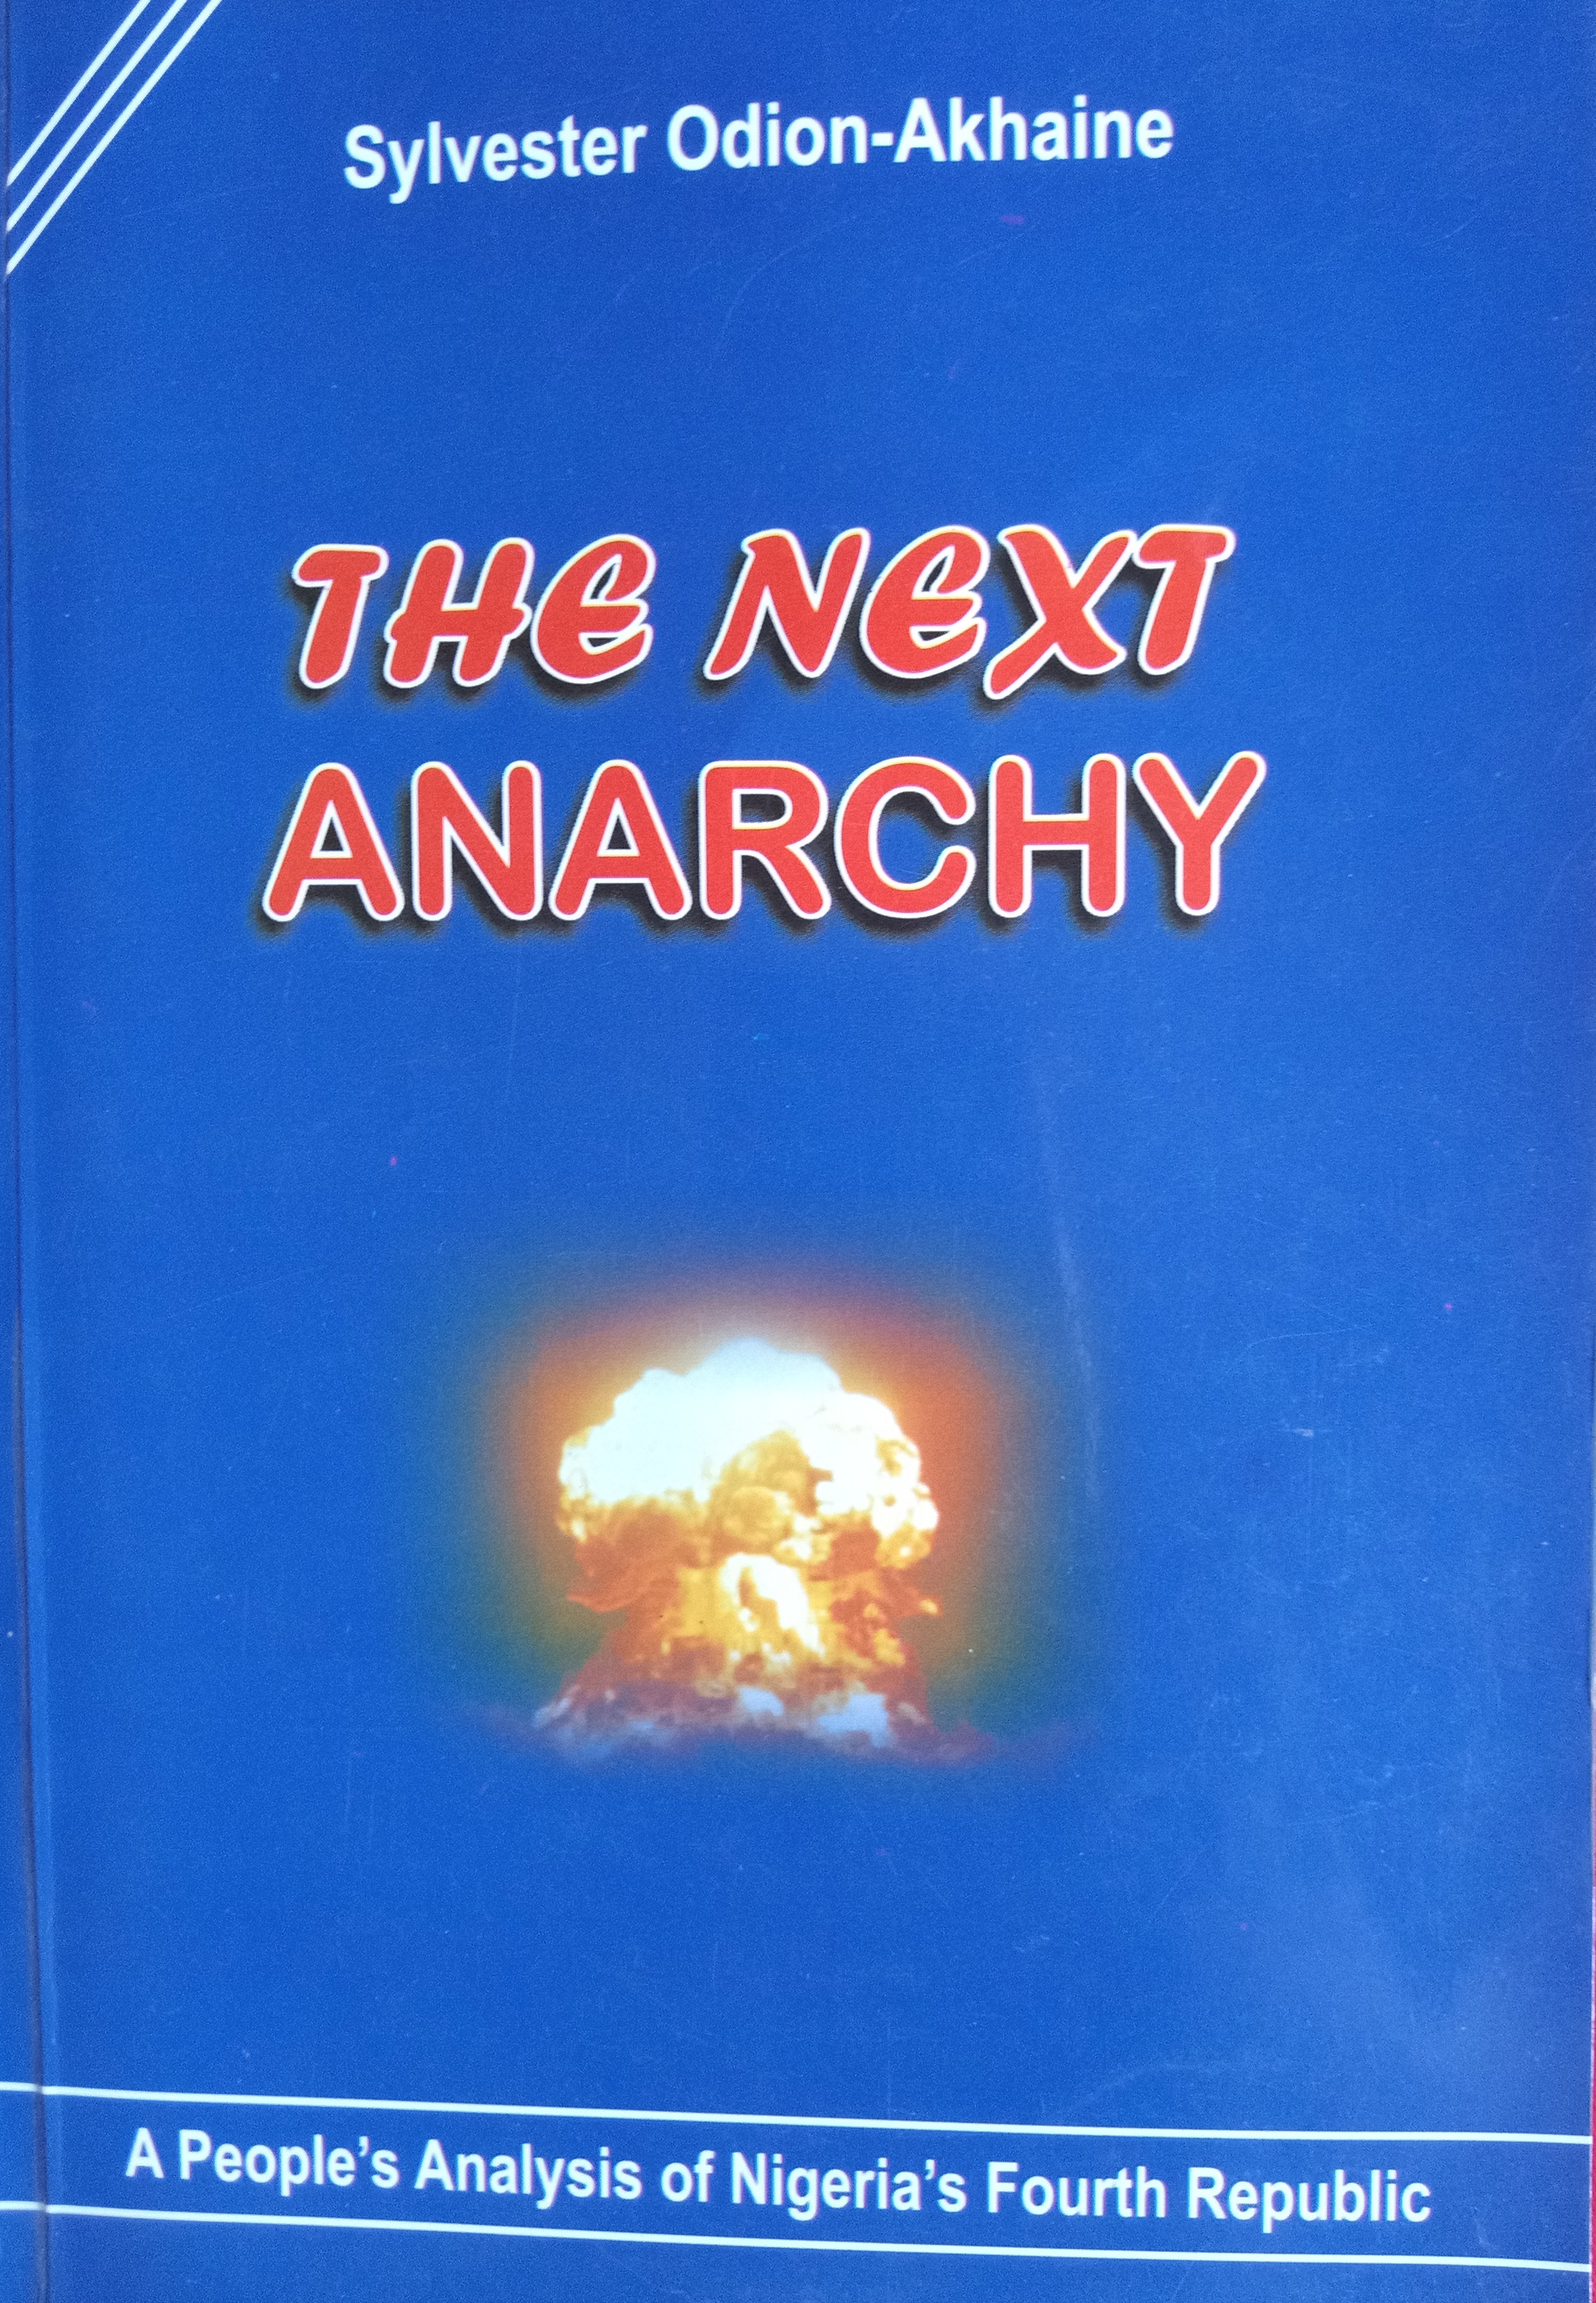 A Correct Prediction of Anarchy Or the Complicity of Discourse?